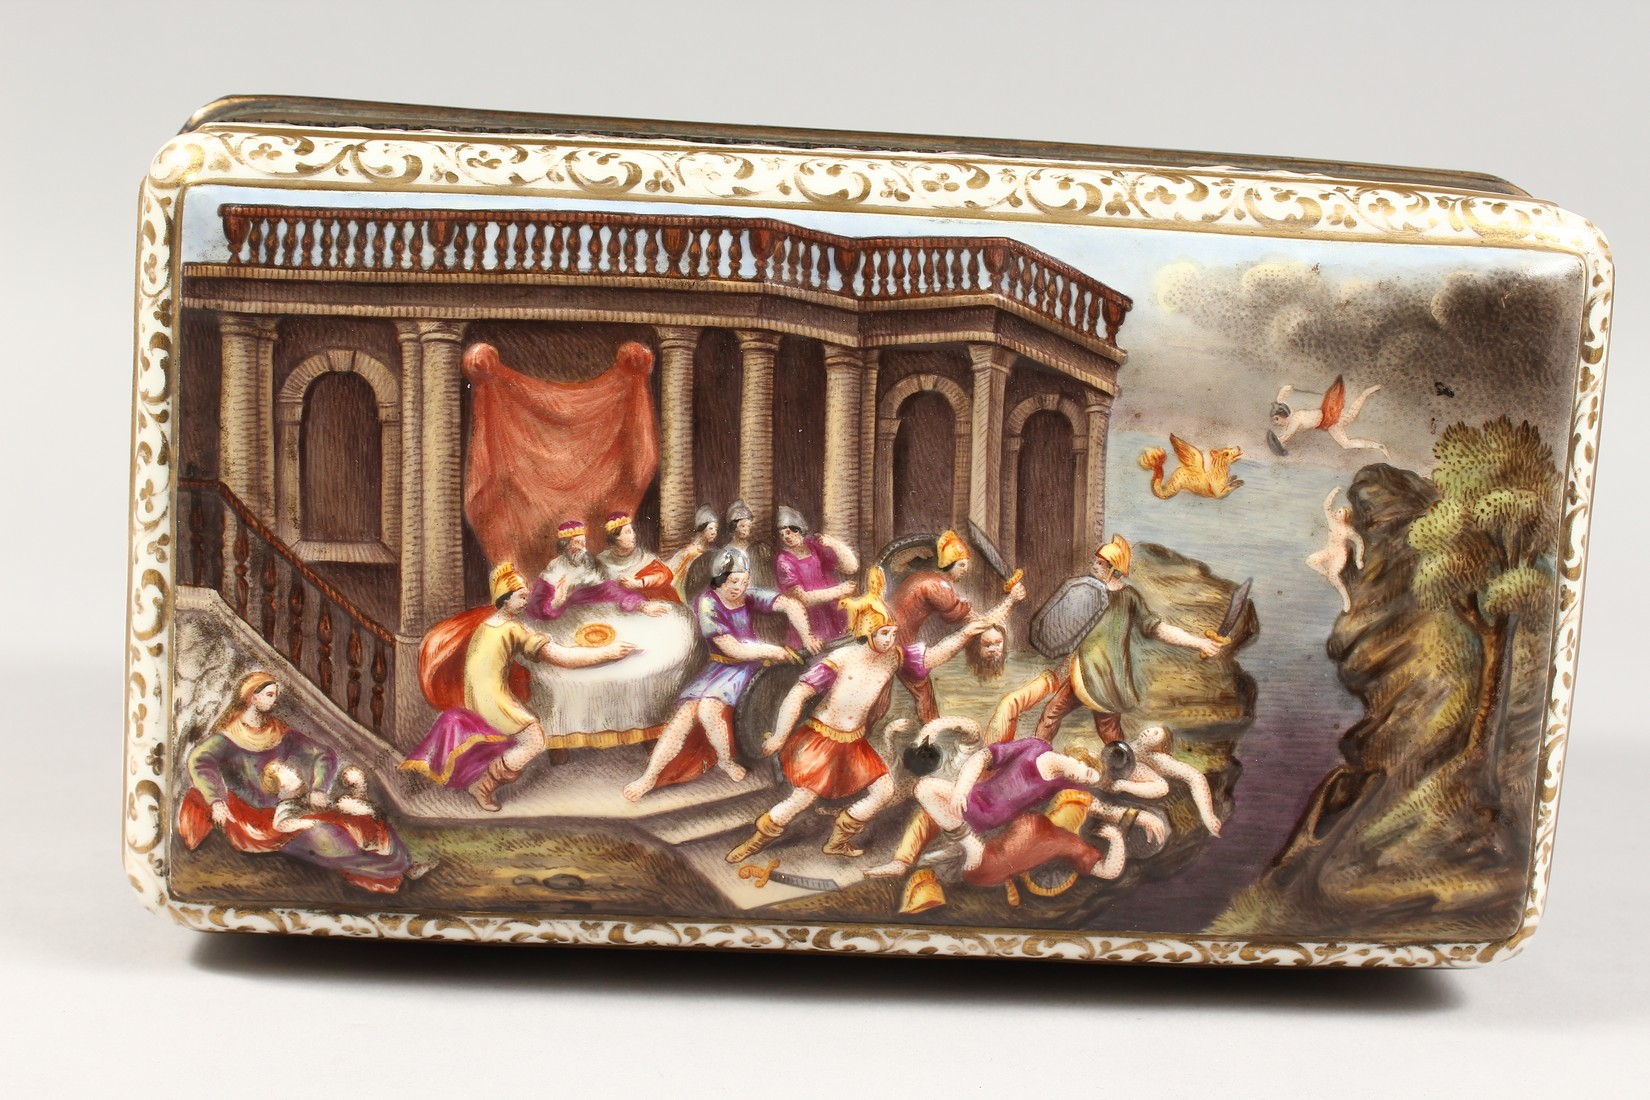 A GOOD CAPODIMONTE CASKET with classical figures in relief 9.5 ins wide. - Image 6 of 8